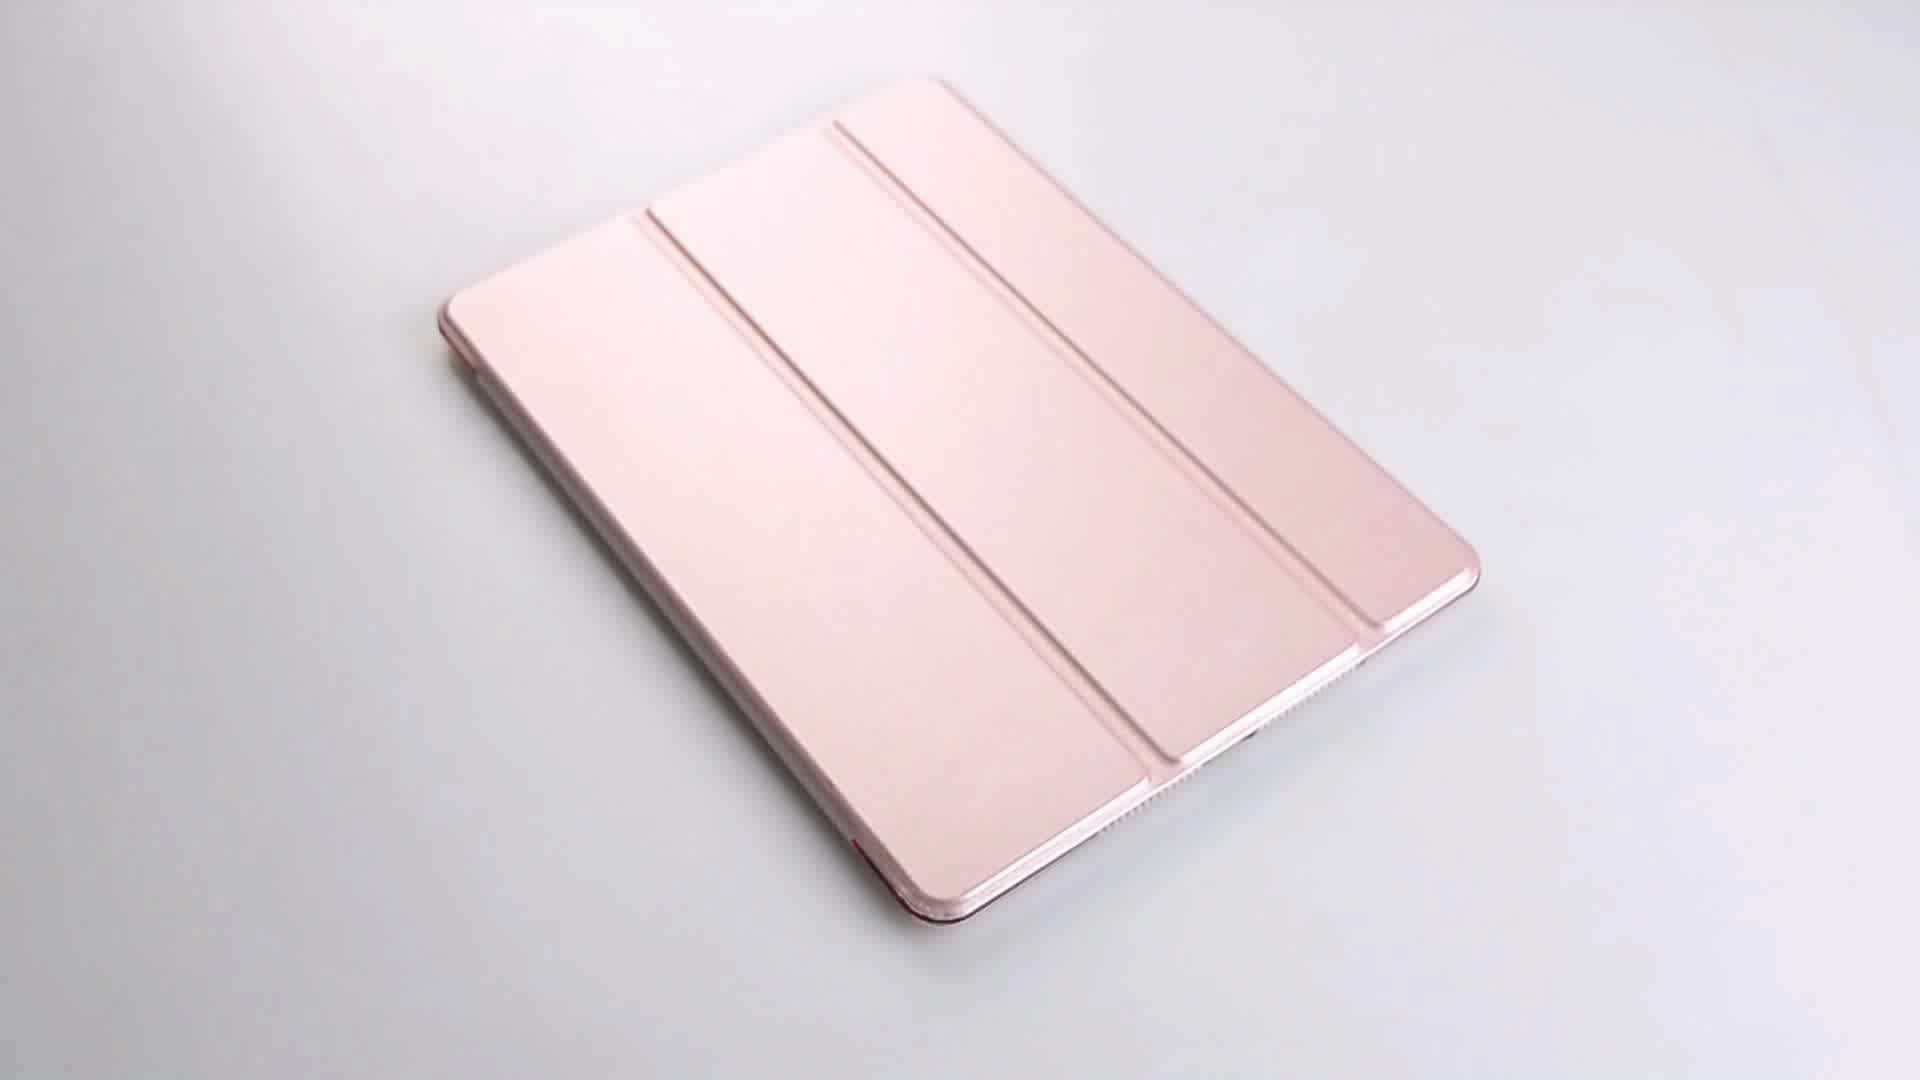 Belt Clip Case For Ipad Minicover For Ipad Mini 3 Case